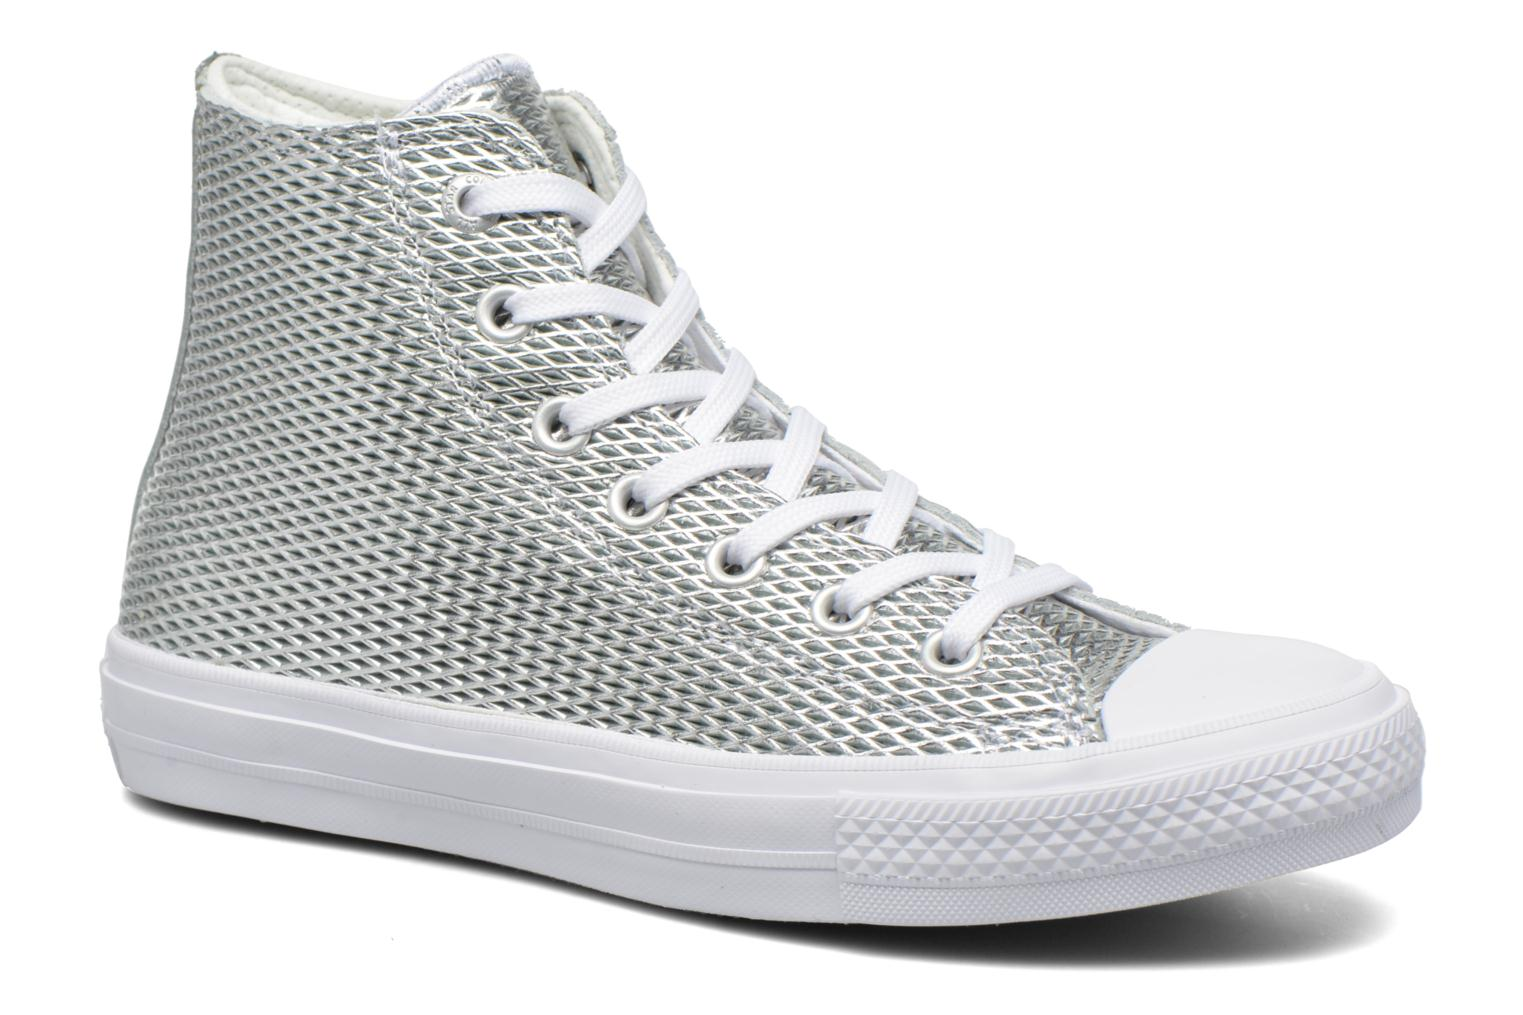 Baskets Converse Chuck Taylor All Star II Hi Perf Metallic Leather Argent vue détail/paire